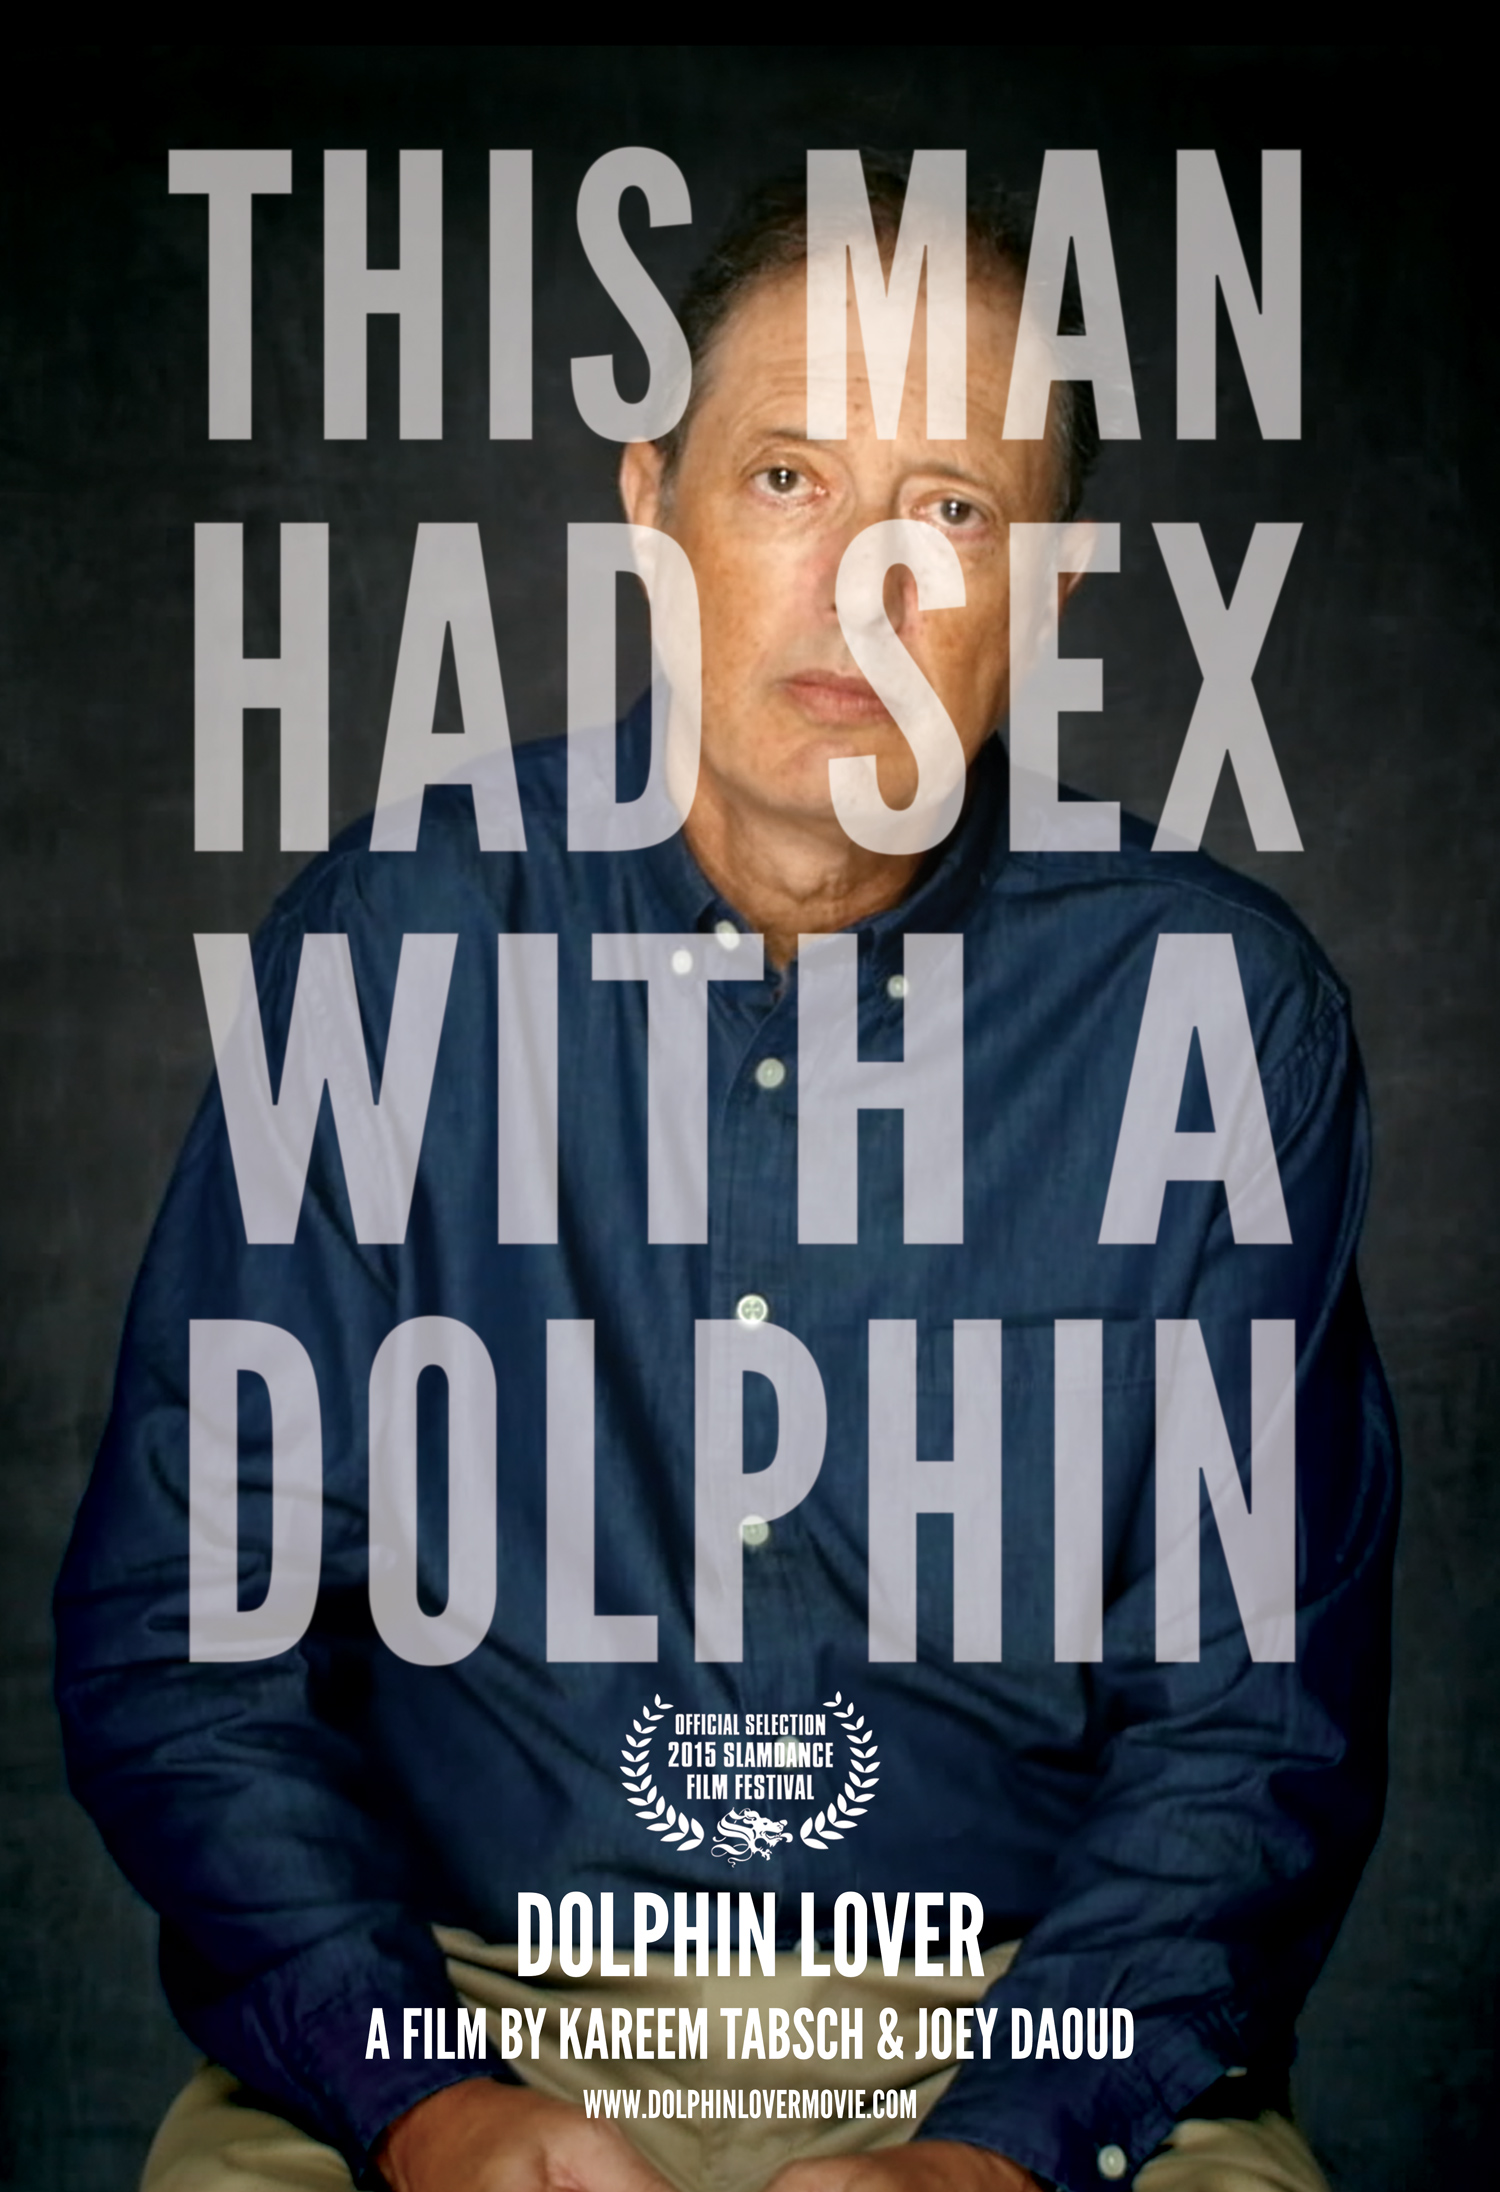 Dolphin-Lover-This-Man-Poster